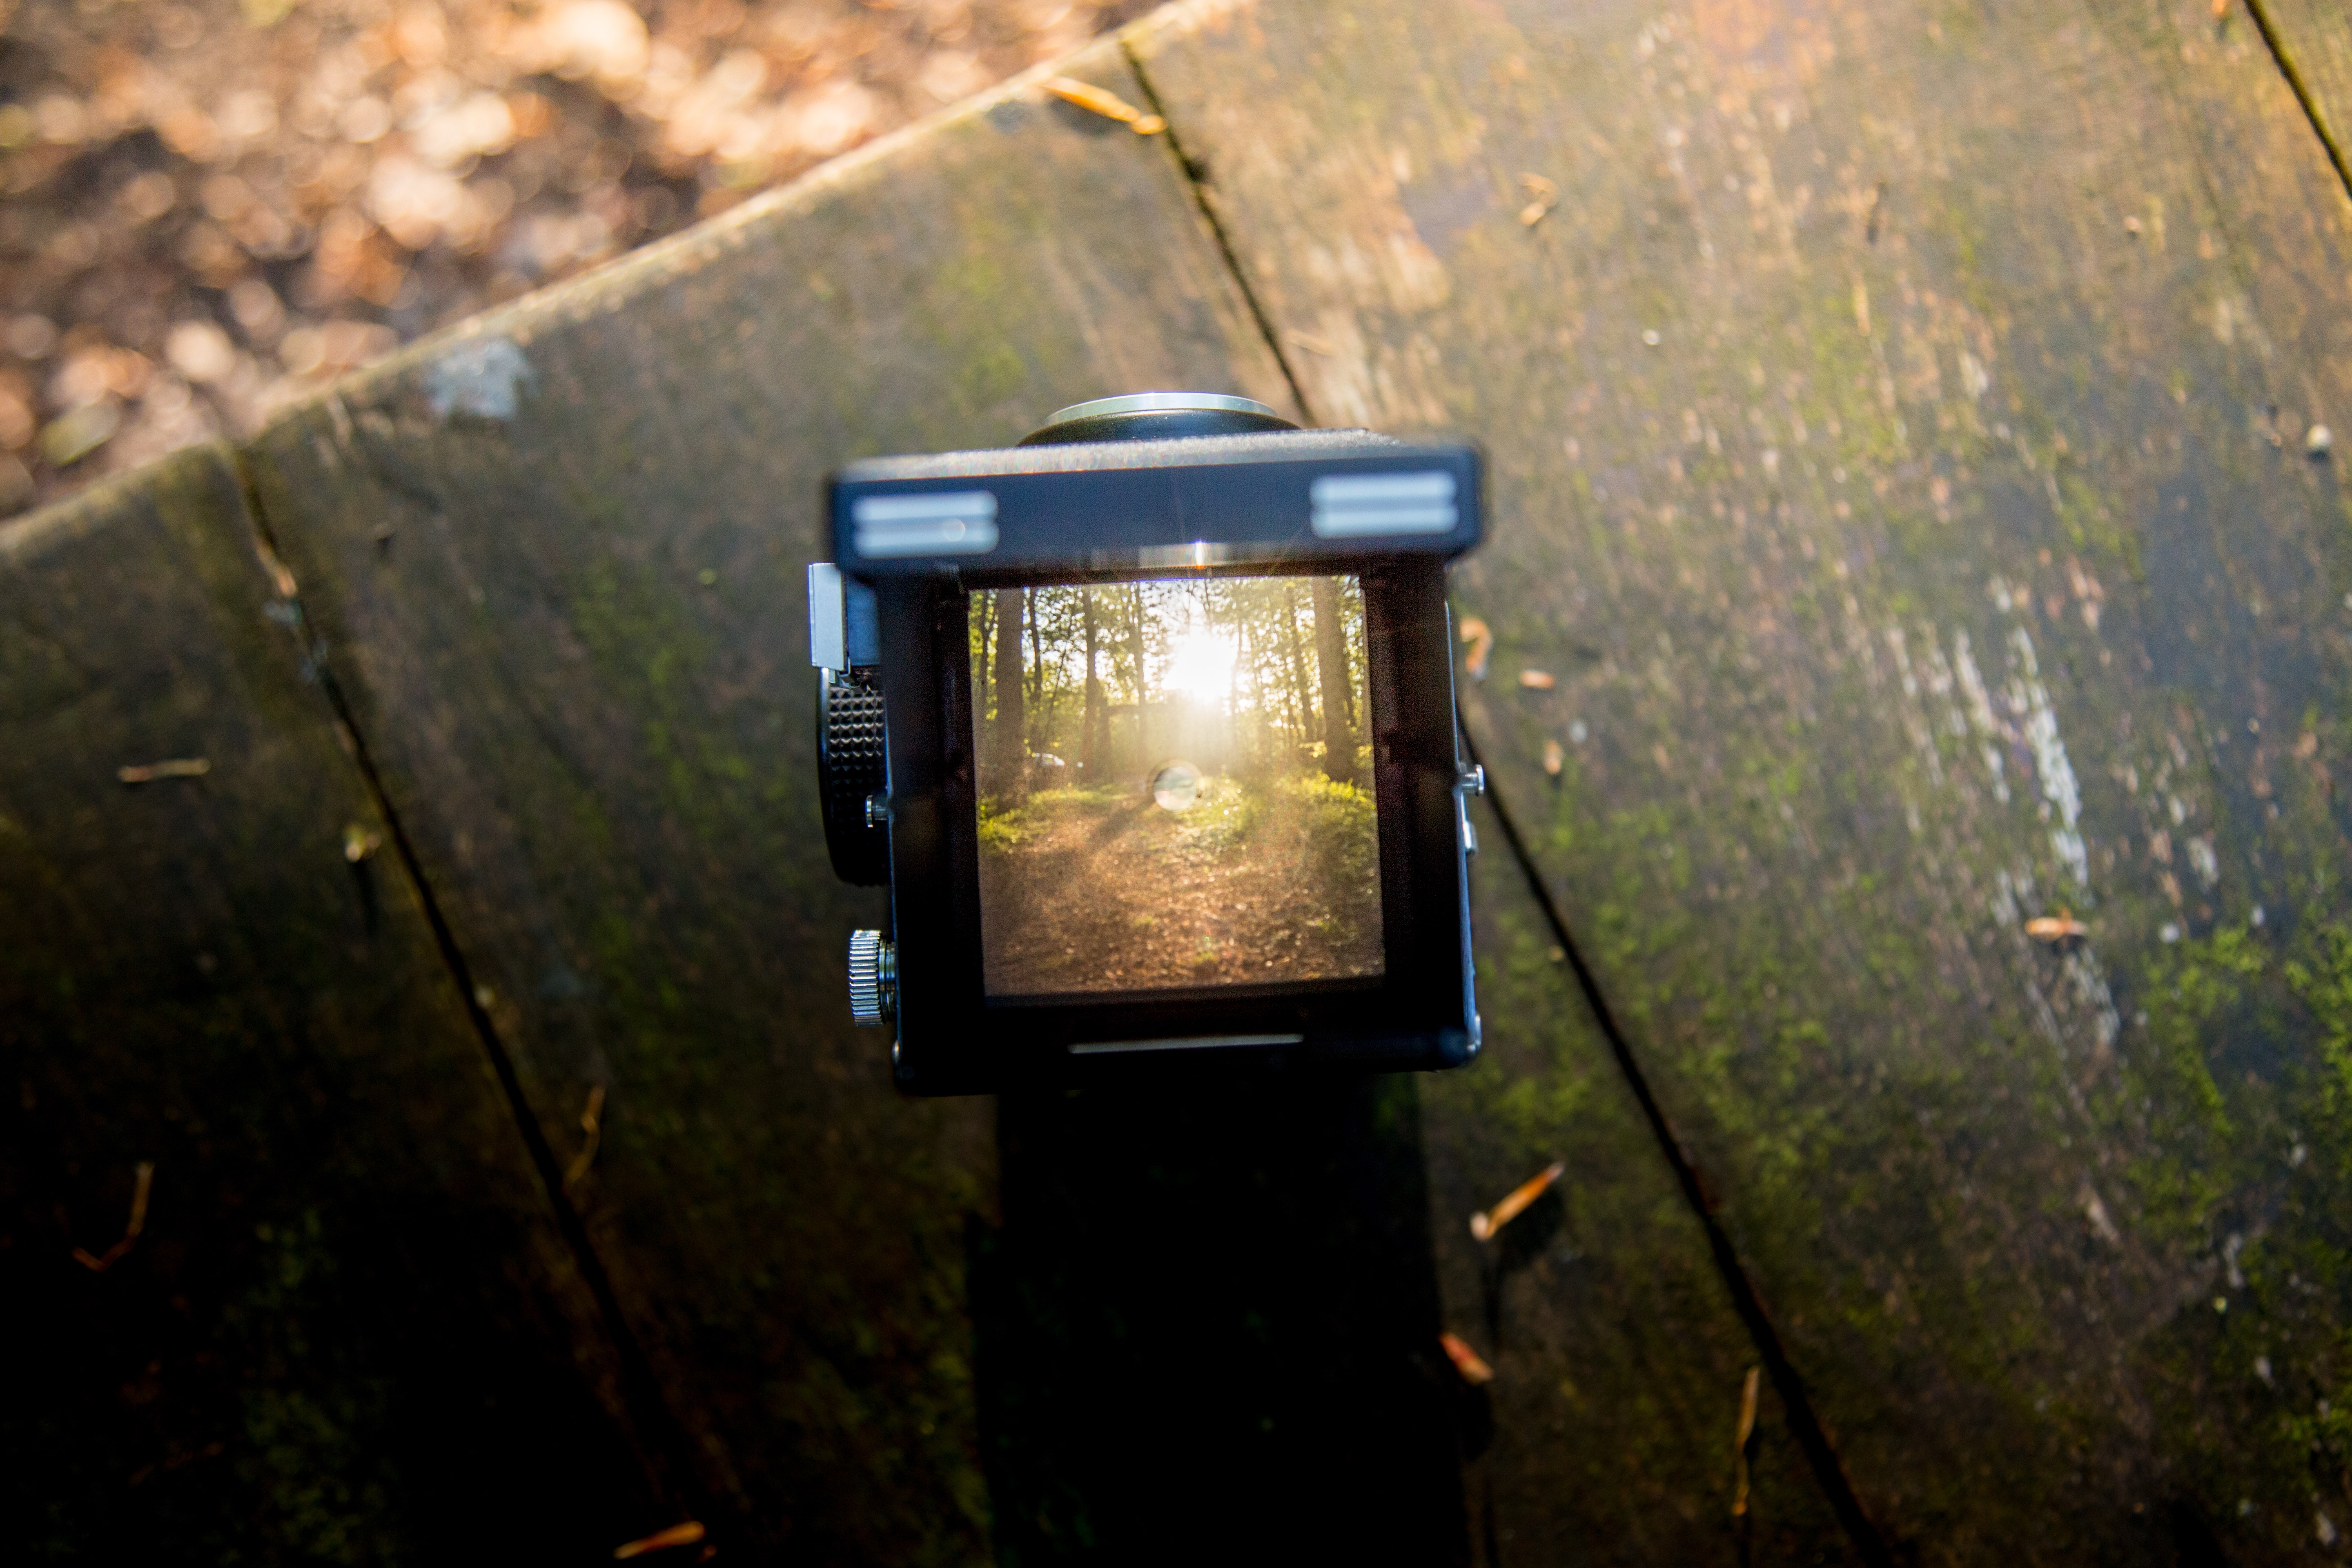 Black Camera on Brown Wooden Table, Blur, Scenic, Wood, Trees, HQ Photo